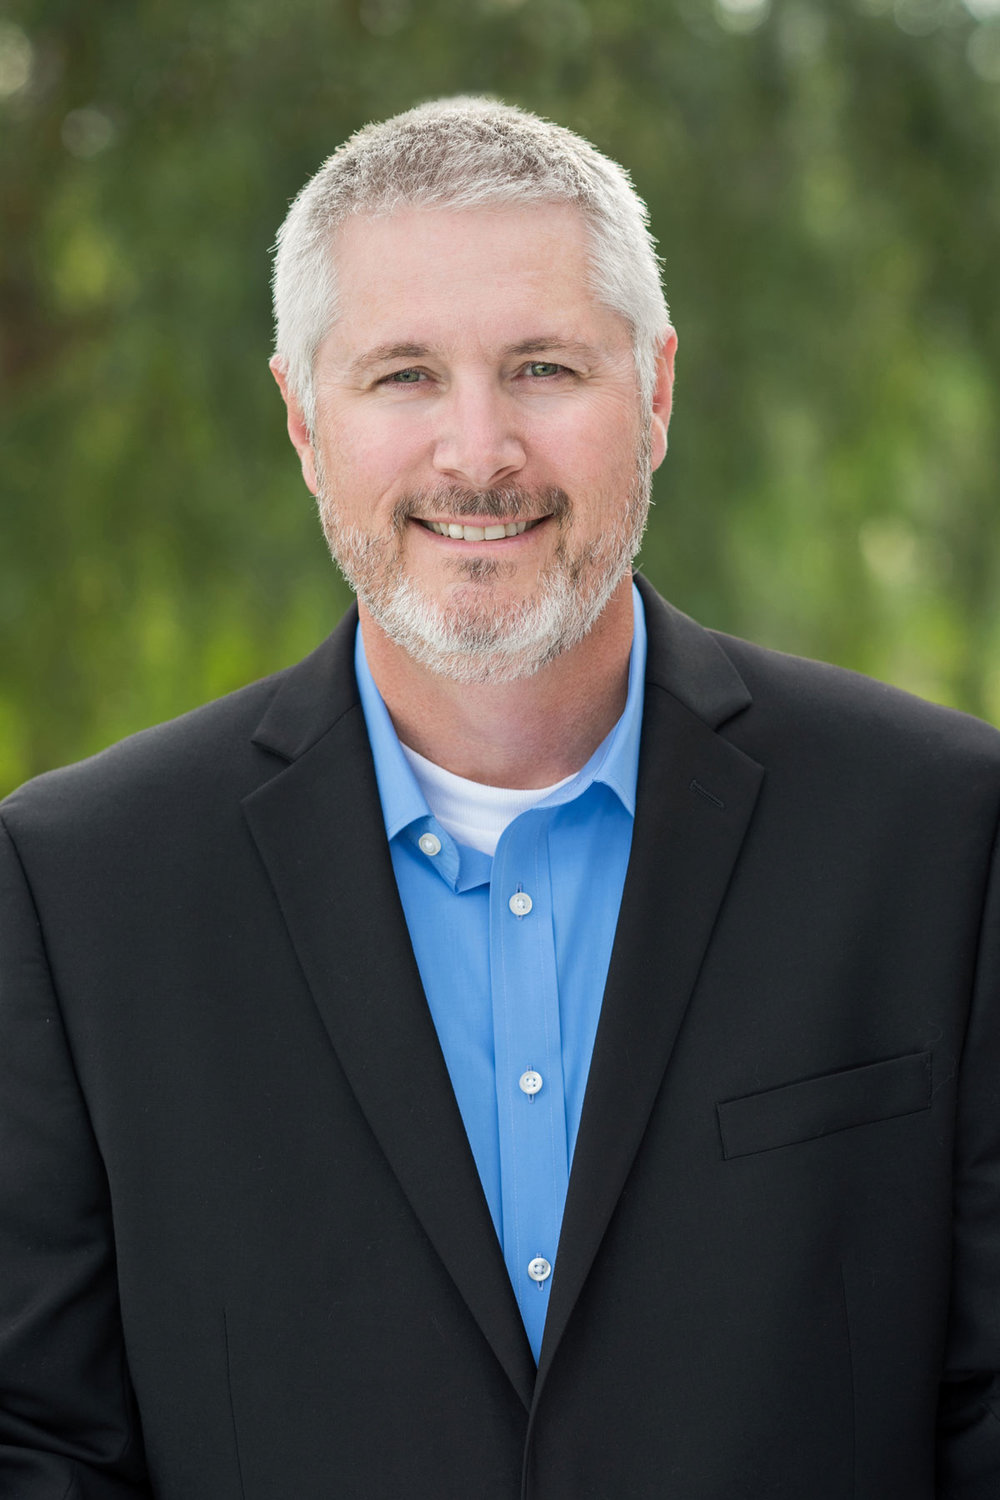 headshot of silver haired man wearing blue shirt and blazer outdoors